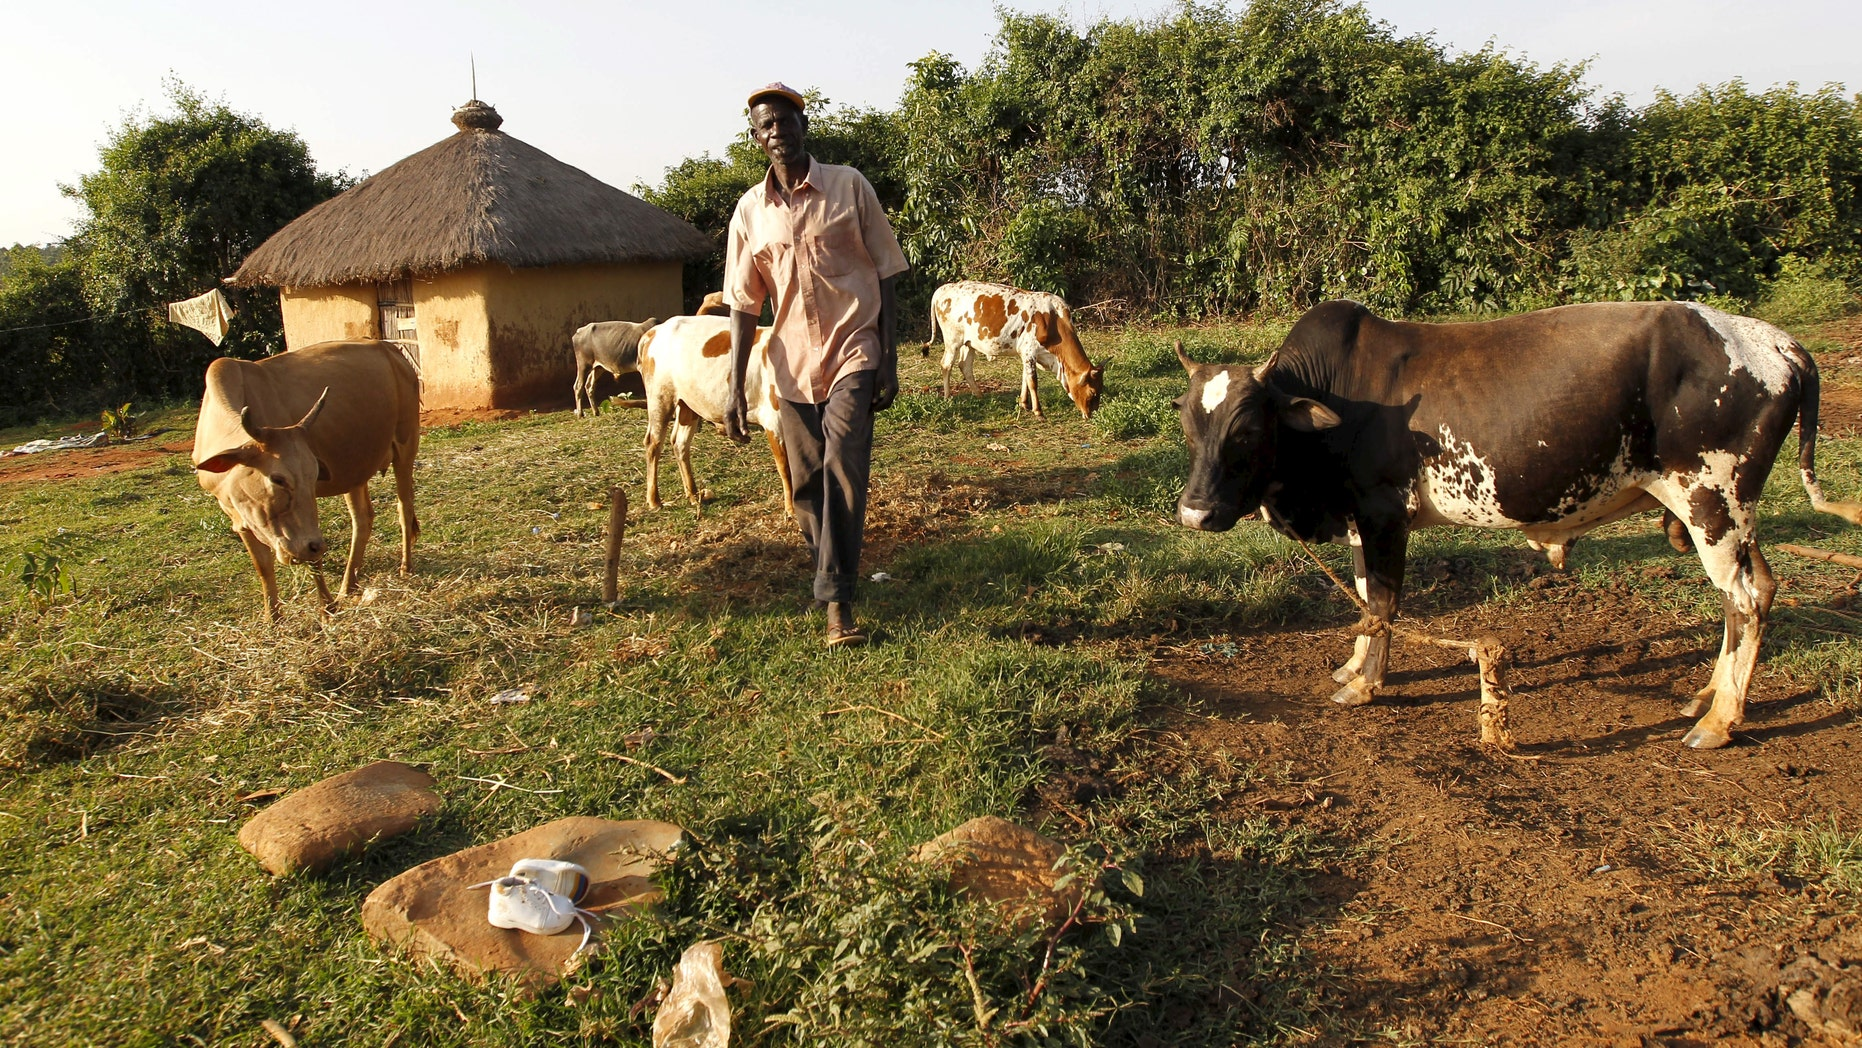 File photo - John Okoth, a 64-year-old herdsman and a farmer, tends to his cattle at his homestead in Kogelo, west of Kenya's capital Nairobi, July 14, 2015. (REUTERS/Thomas Mukoya)